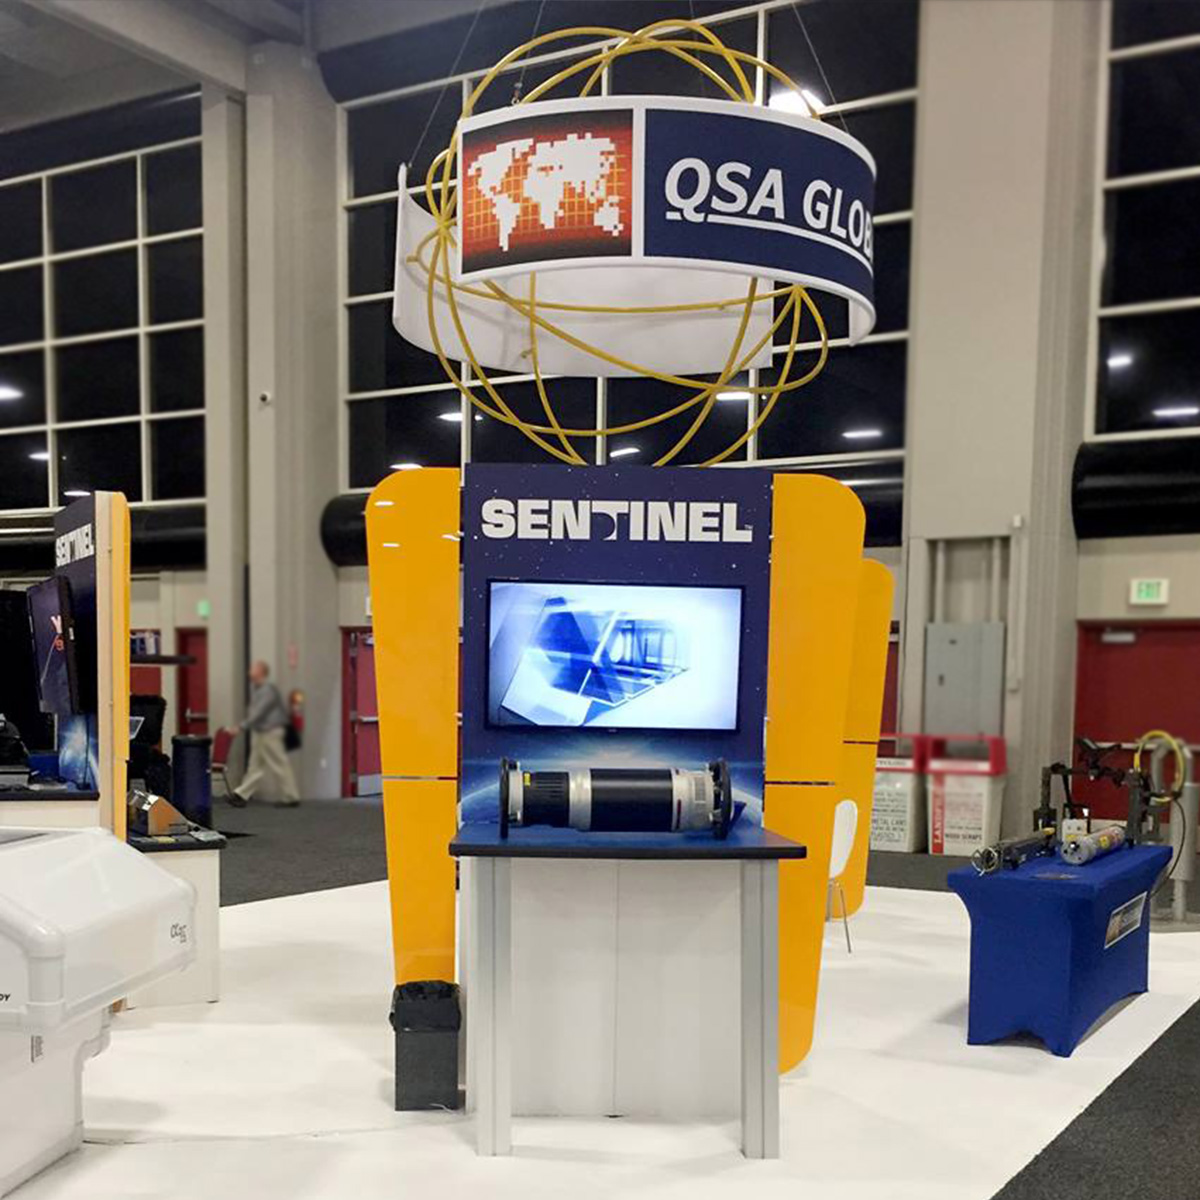 QSA DISPLAY KIOSKS design custom exhibit design interactive kiosk hanging sign display signage interactive